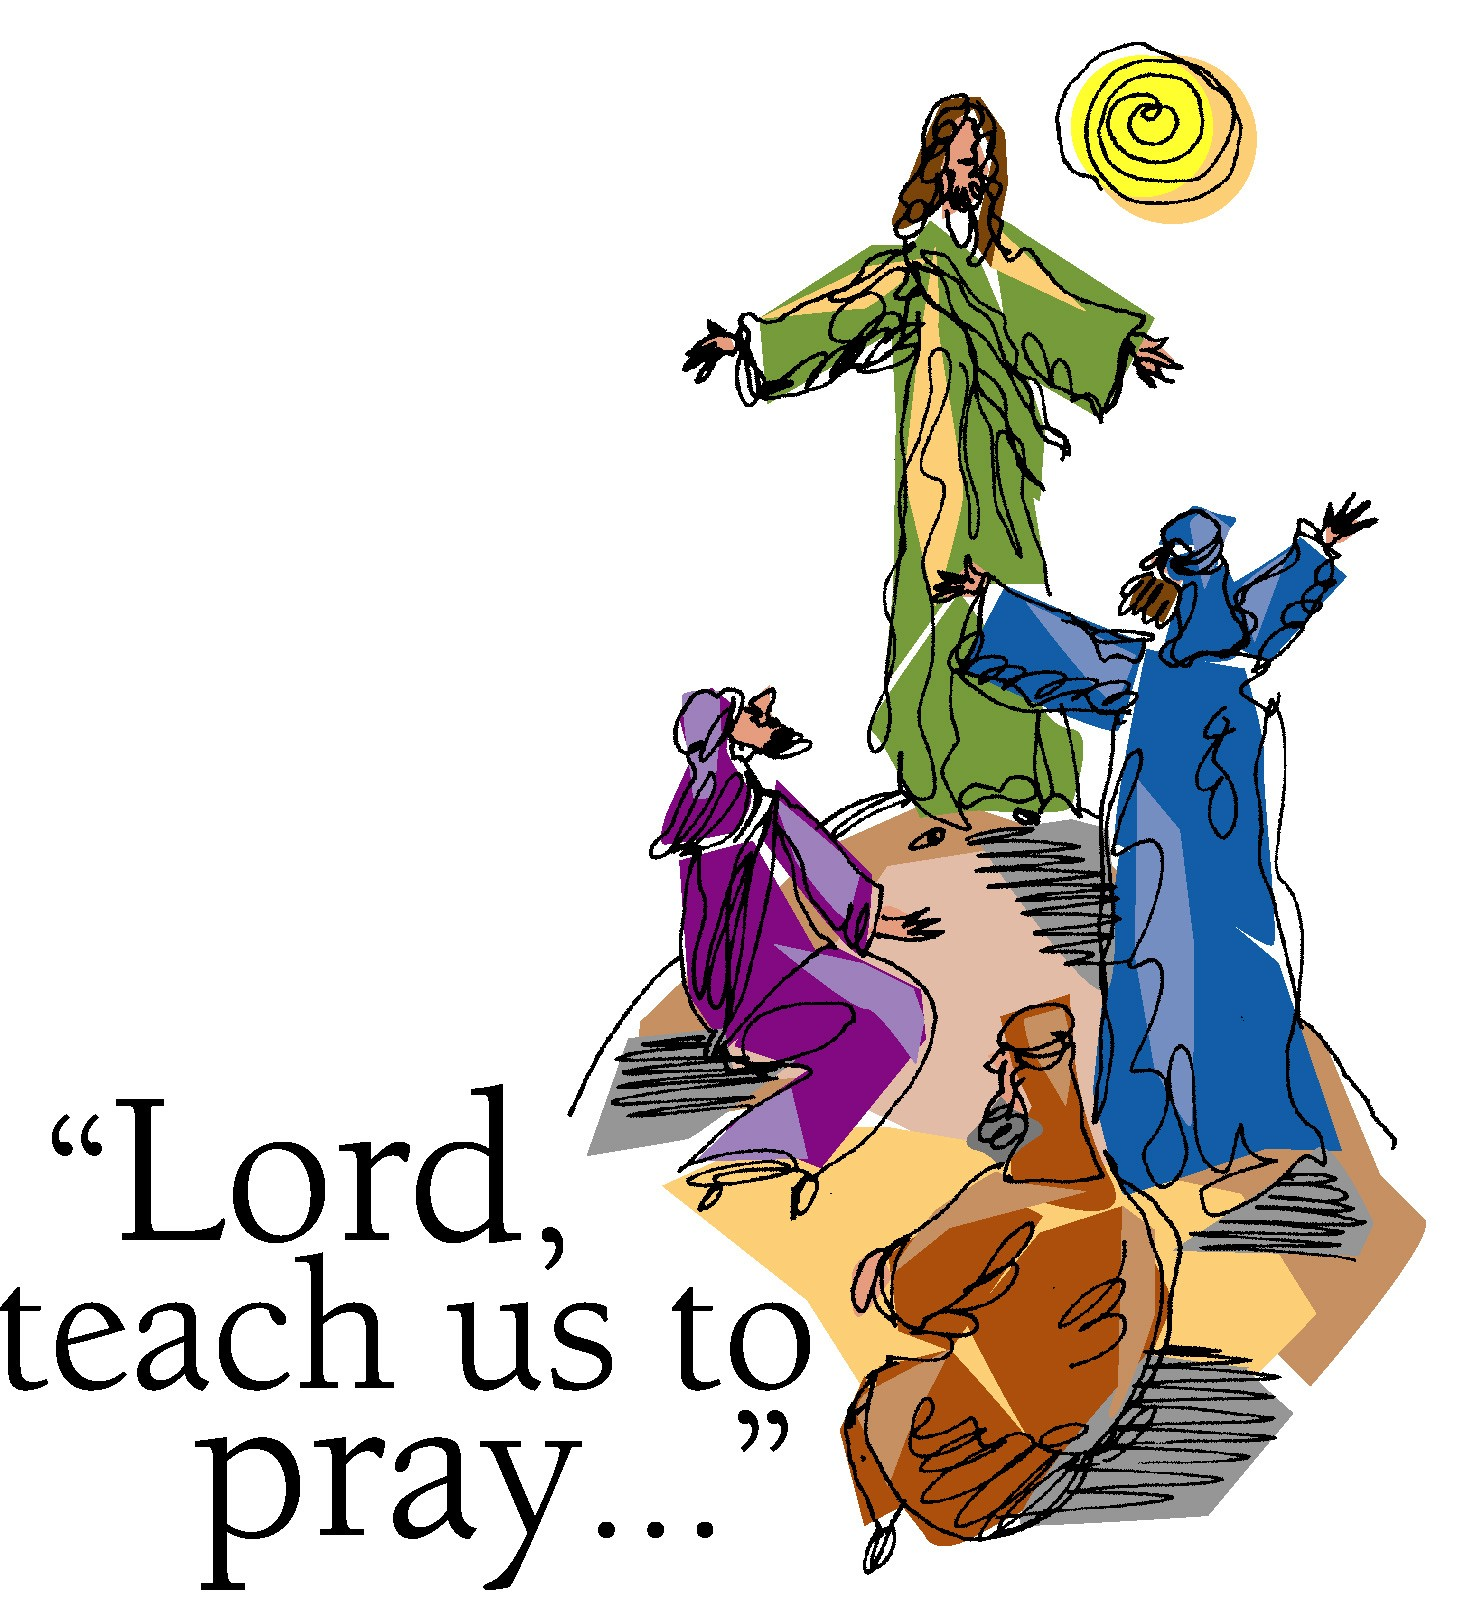 Jesus with with us clipart picture royalty free stock Jesus with with us clipart - ClipartFest picture royalty free stock